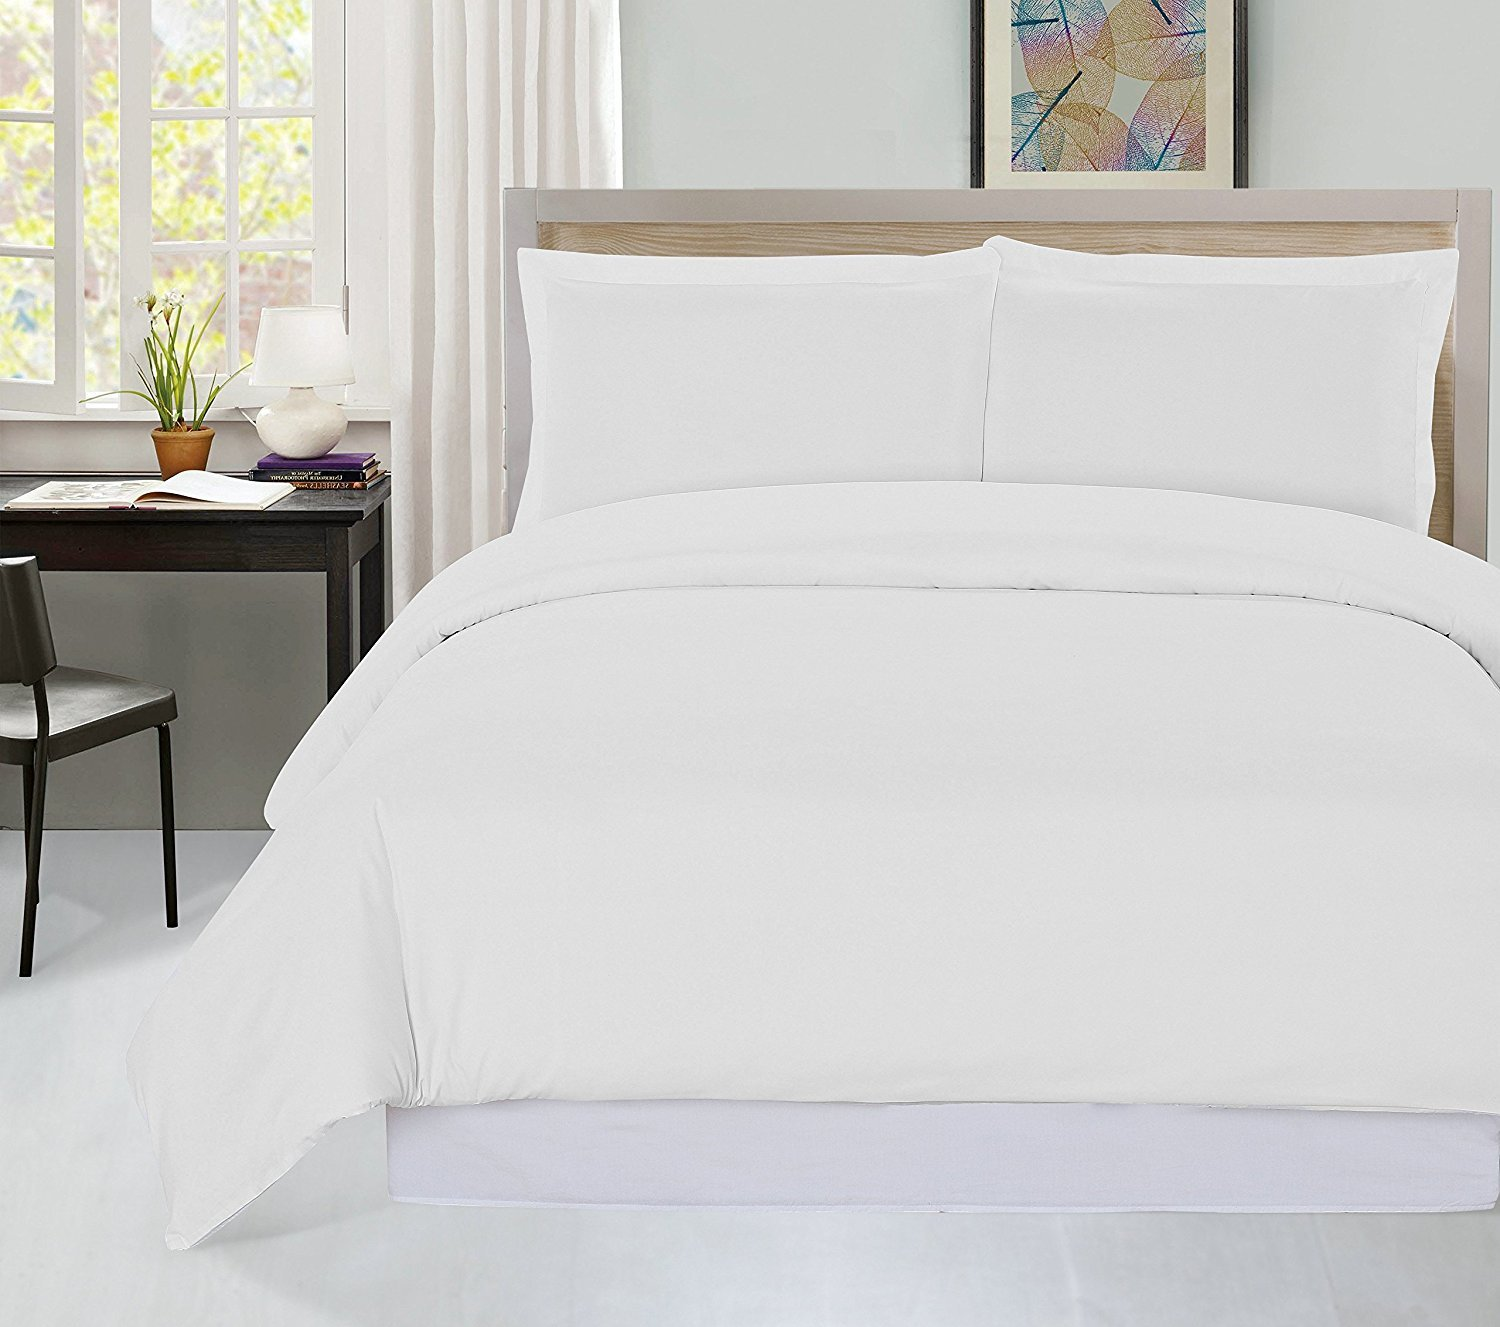 Utopia Bedding 3 Piece Queen Duvet Cover Set with 2 Pillow Shams, White